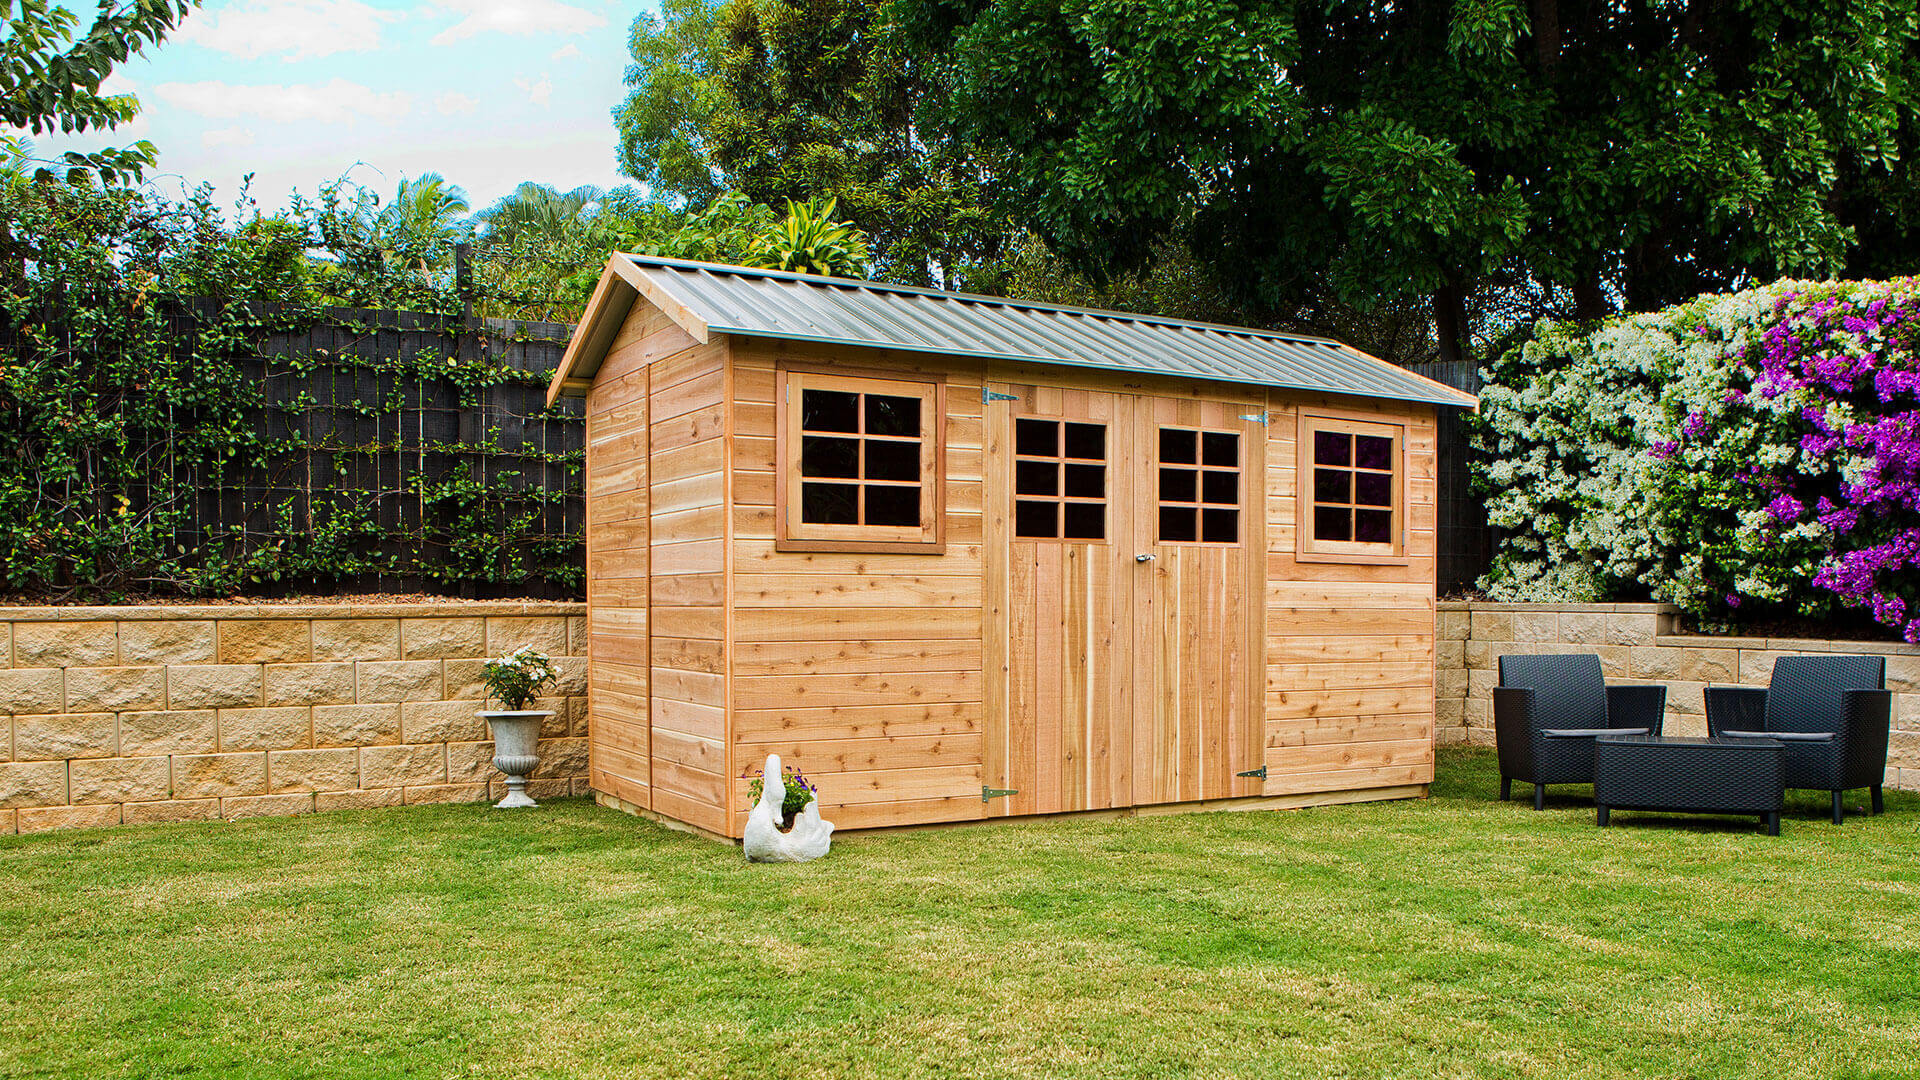 Not just any shed, <b>a Cedar Shed!</b>